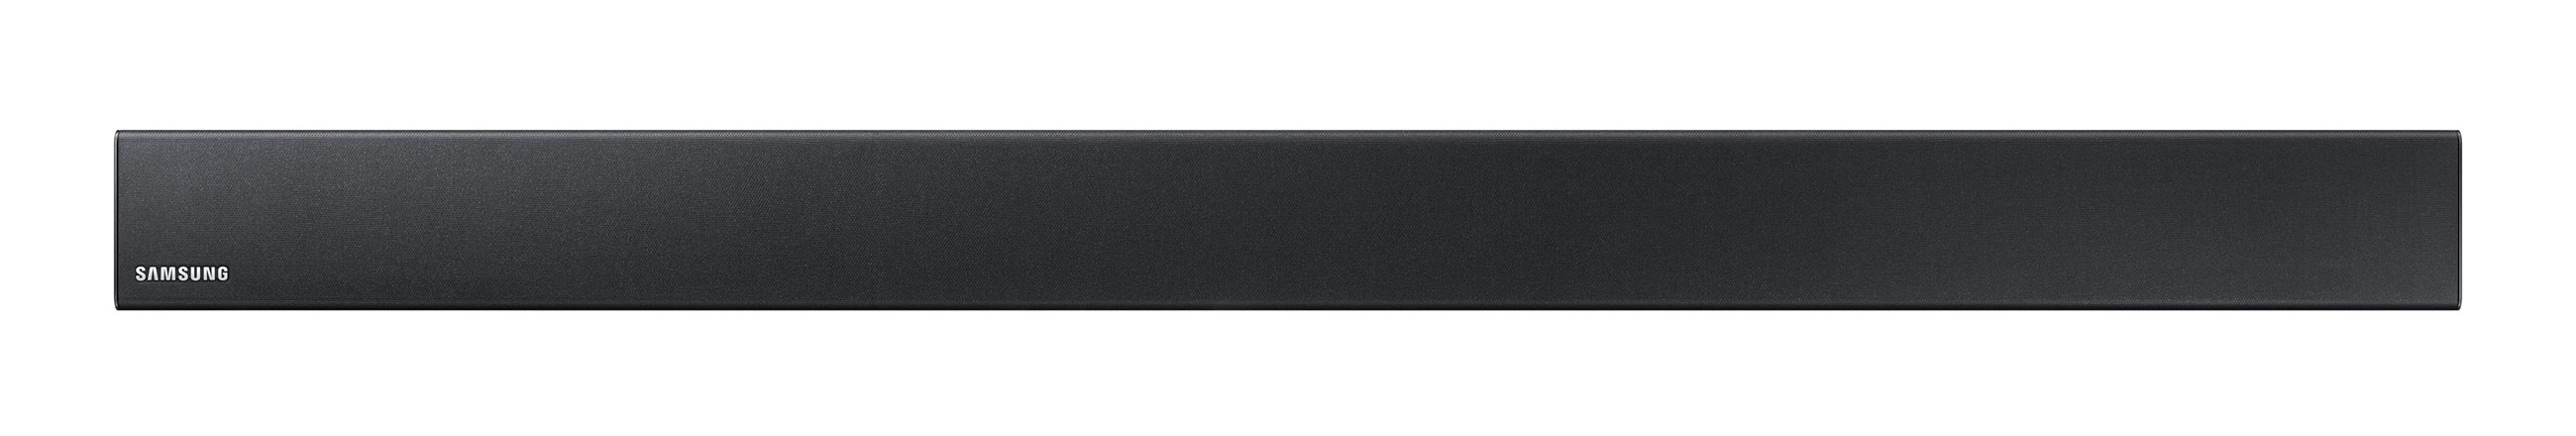 Sony BDP-S3700 Smart Blu-Ray Disc Player